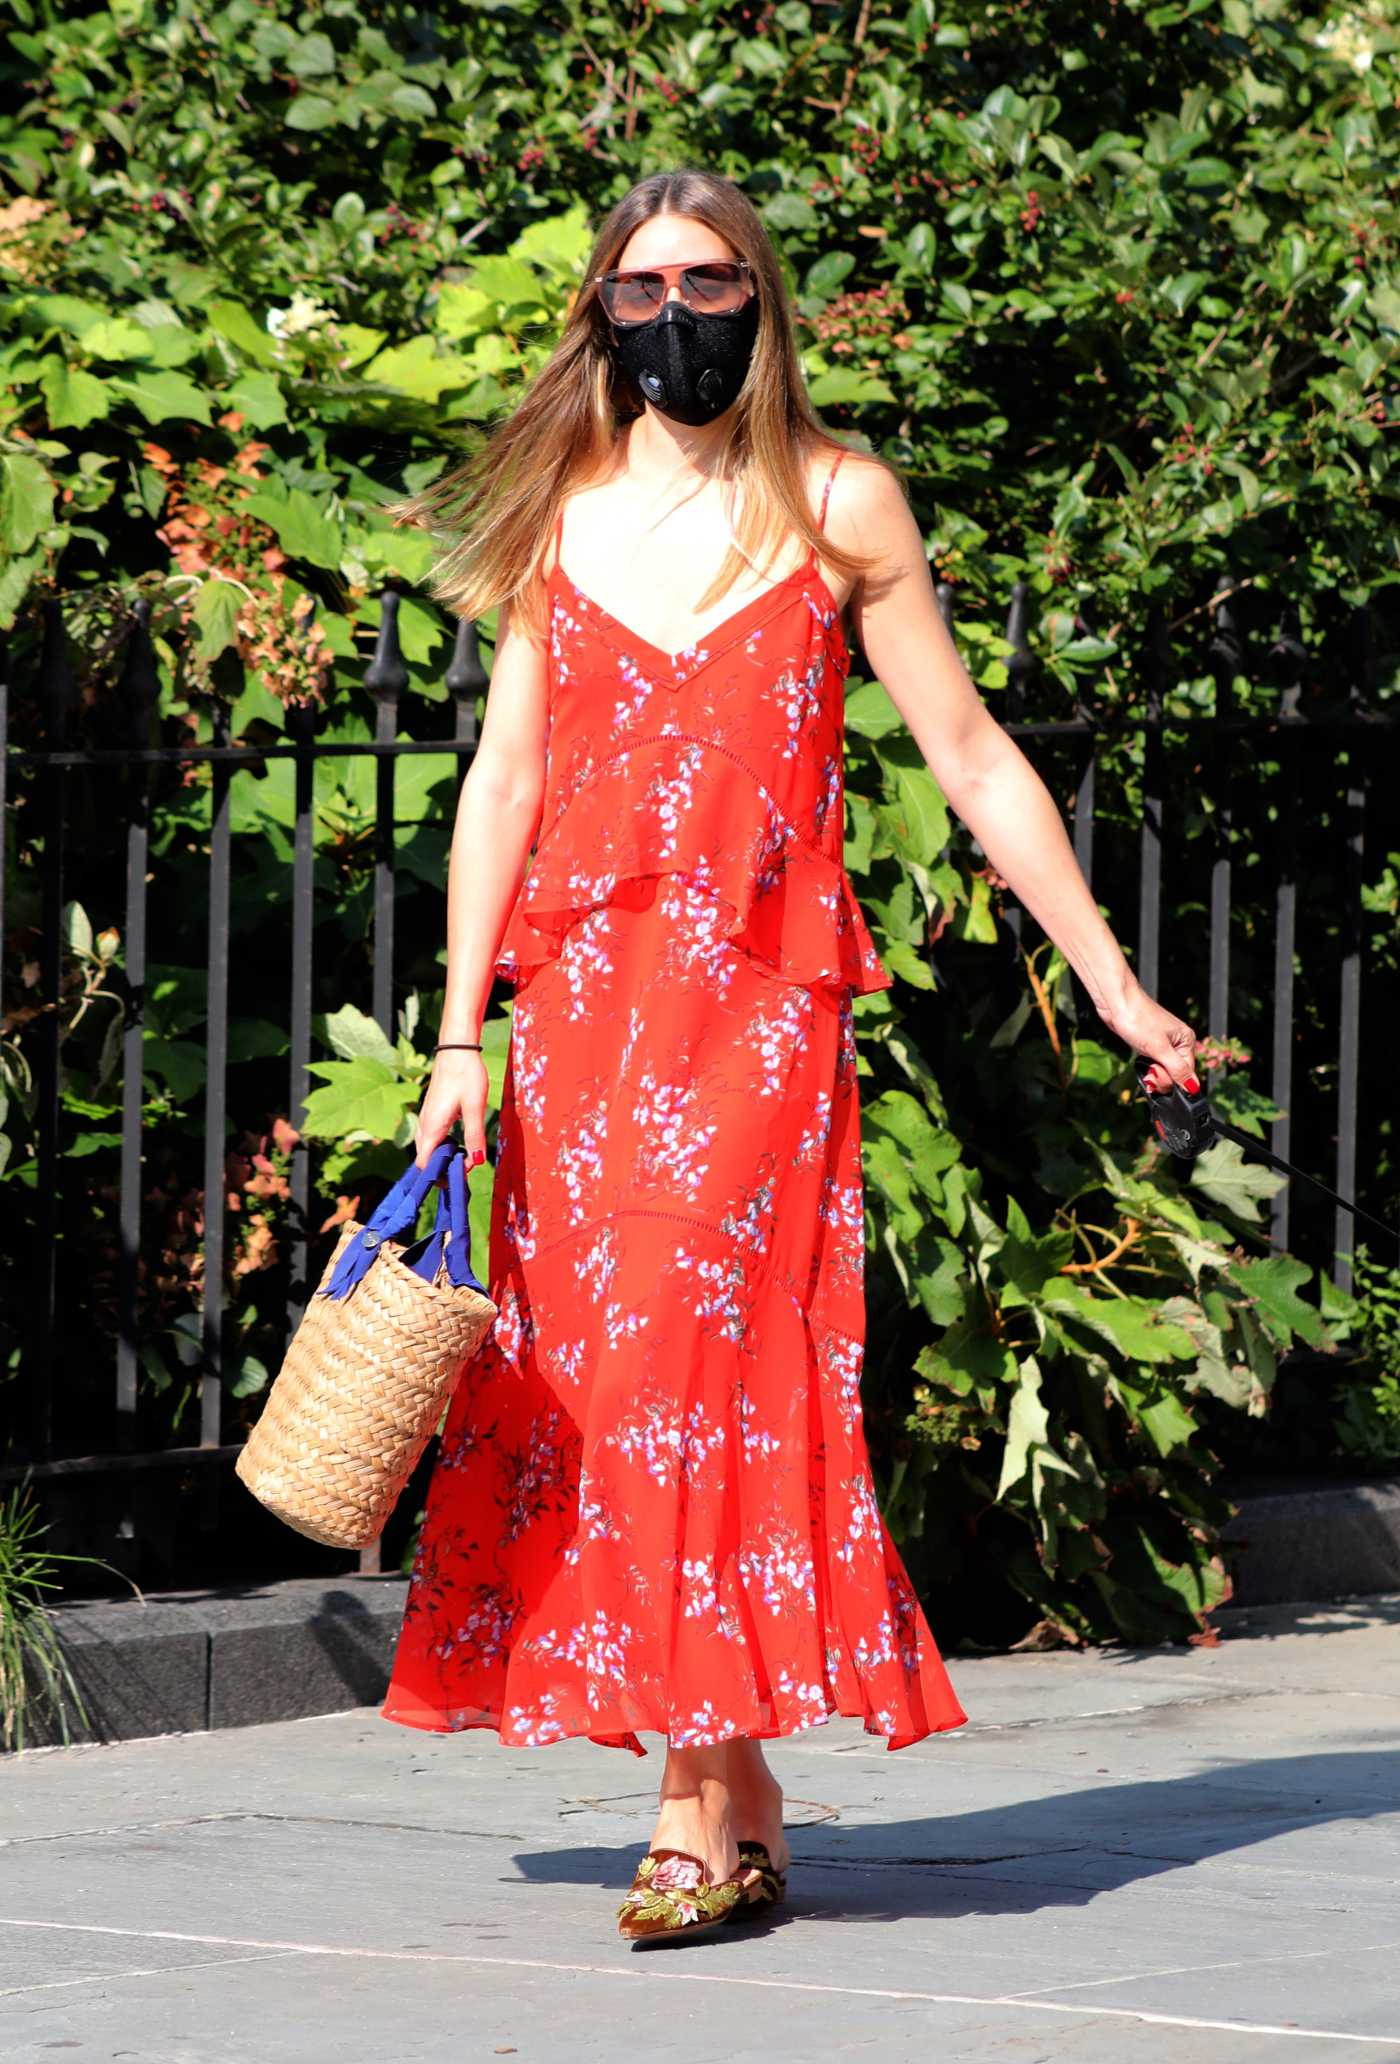 Olivia Palermo in a Red Summer Dress Walks Her Dog in Brooklyn 08/10/2020